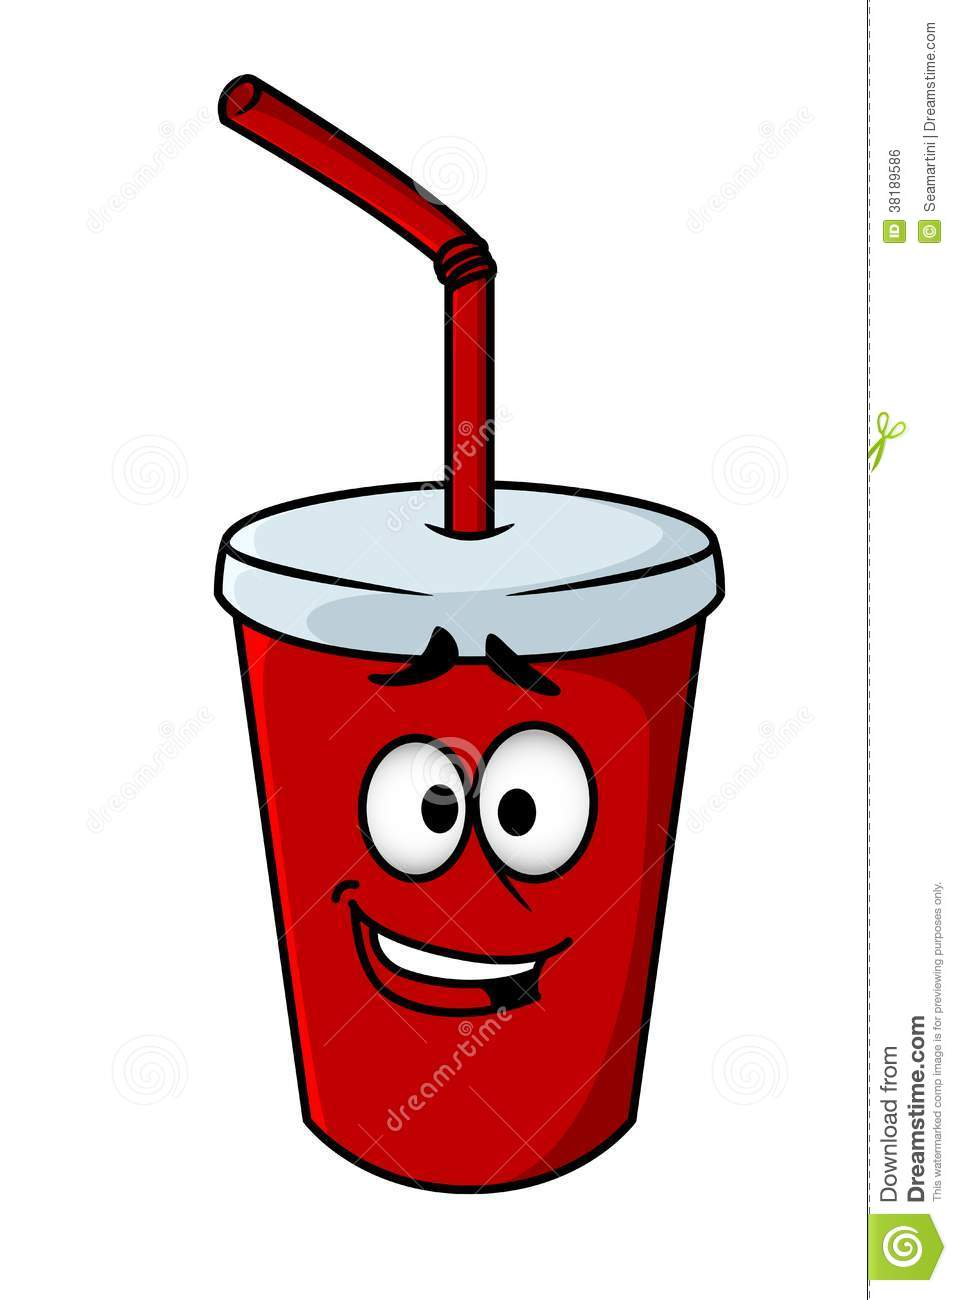 Cartoon Clipart Of A Black And White Goofy Smiling Soda Bottle ...